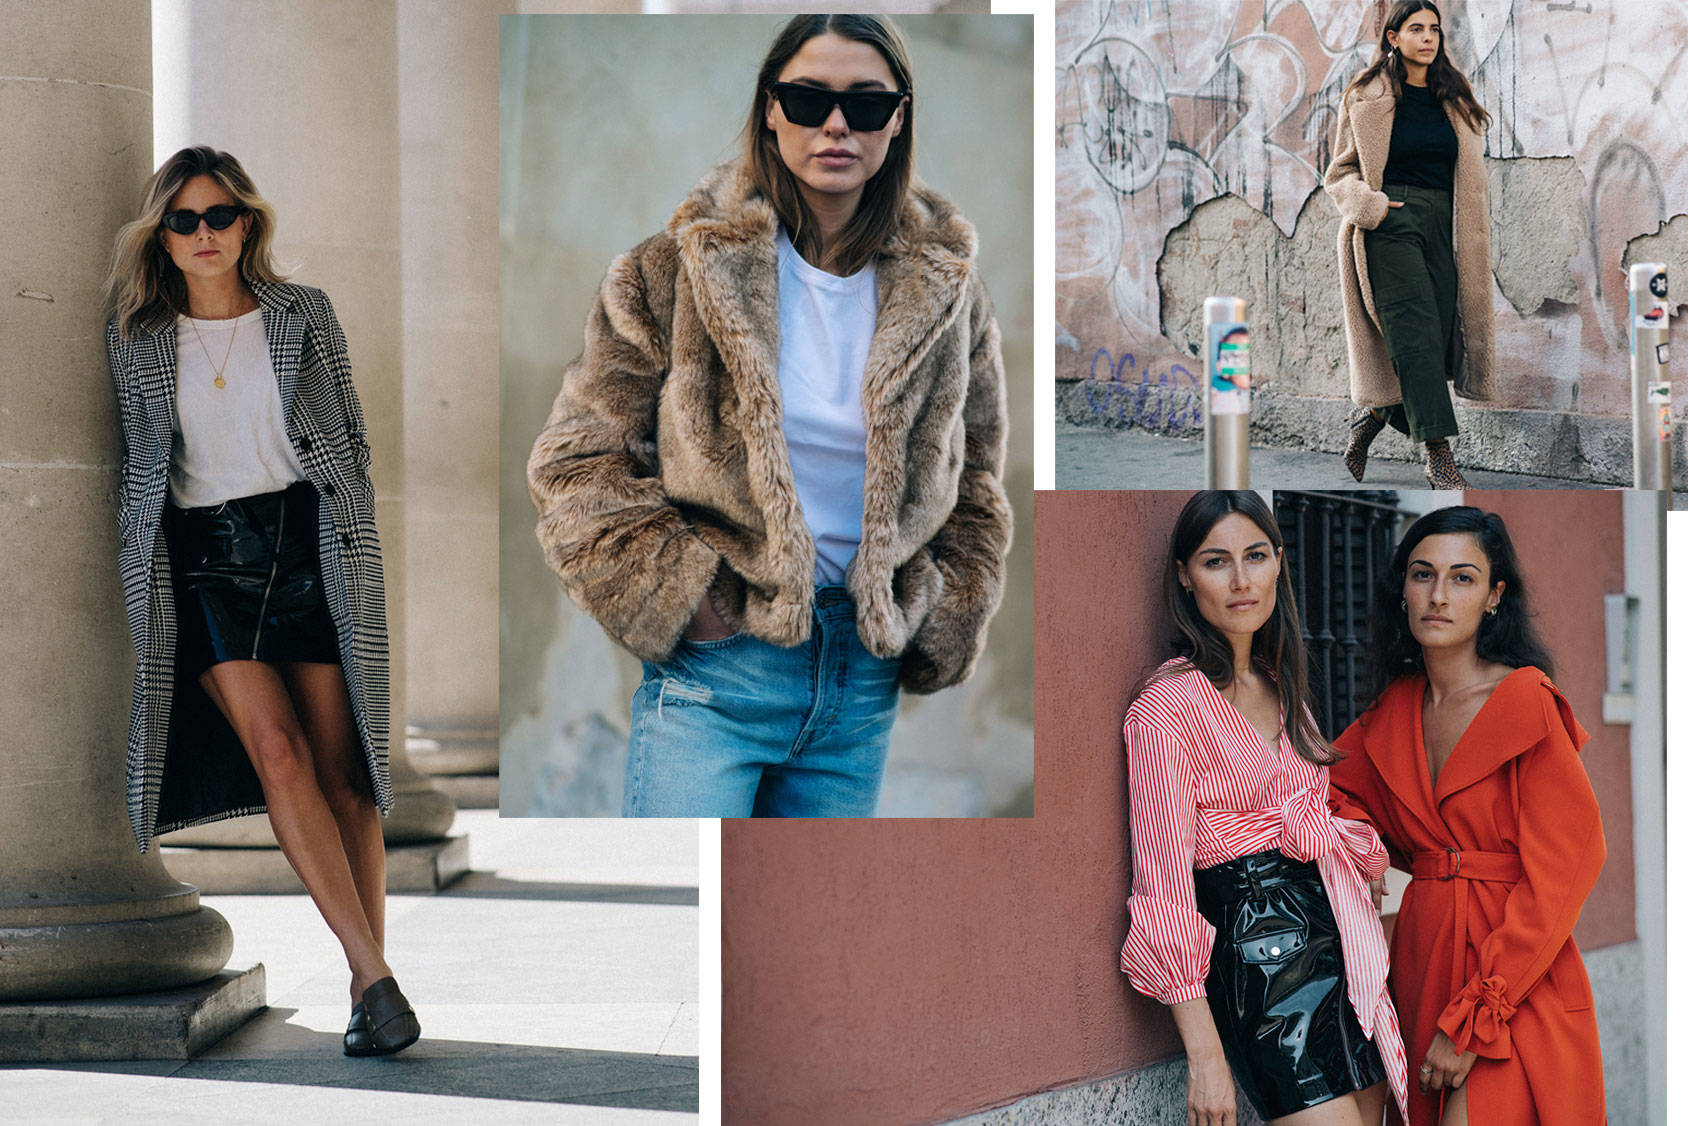 5 STREET STYLE TRENDS TO BRING INTO THE NEW YEAR